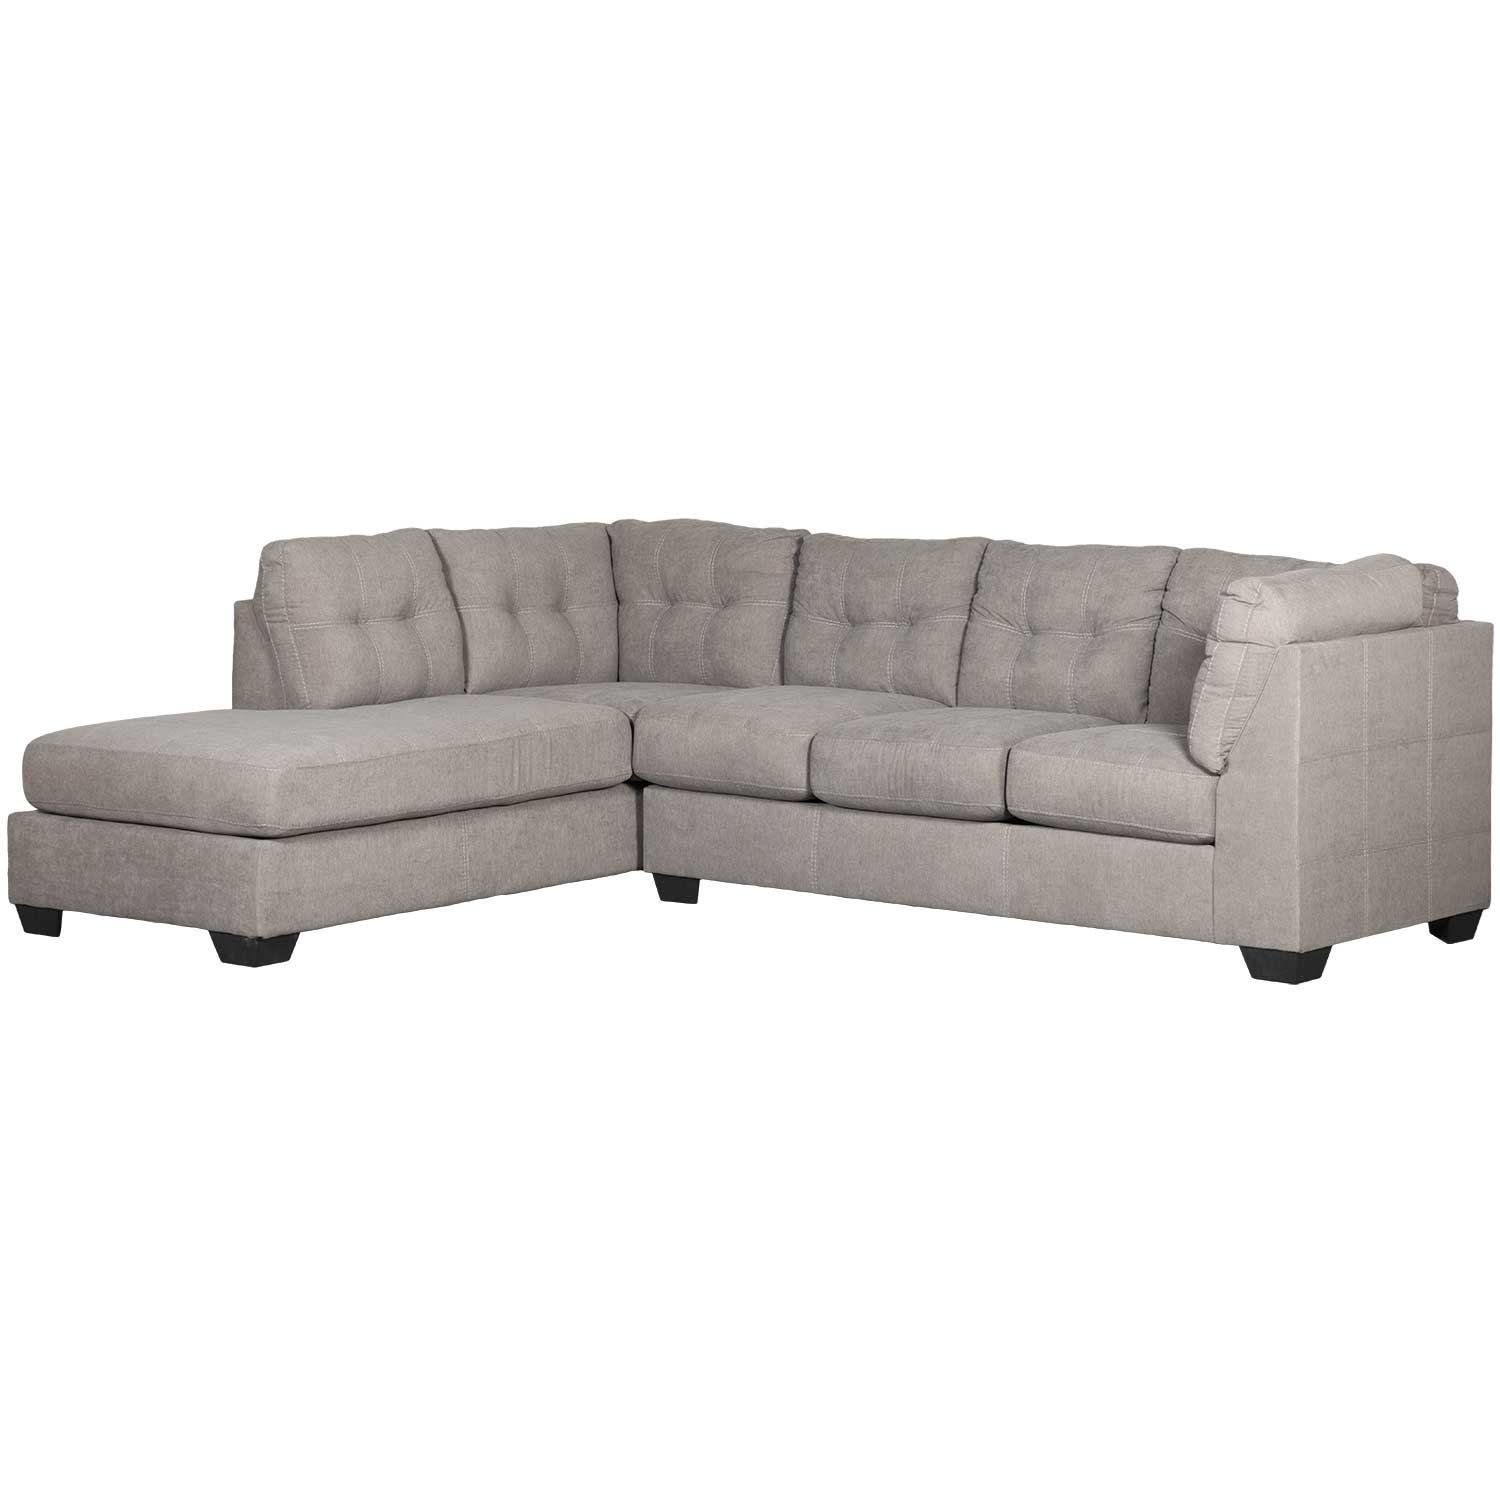 Maier Charcoal 2 Piece Sectional With Laf Chaise | 4520016/67 With Regard To Arrowmask 2 Piece Sectionals With Sleeper & Left Facing Chaise (Image 15 of 25)